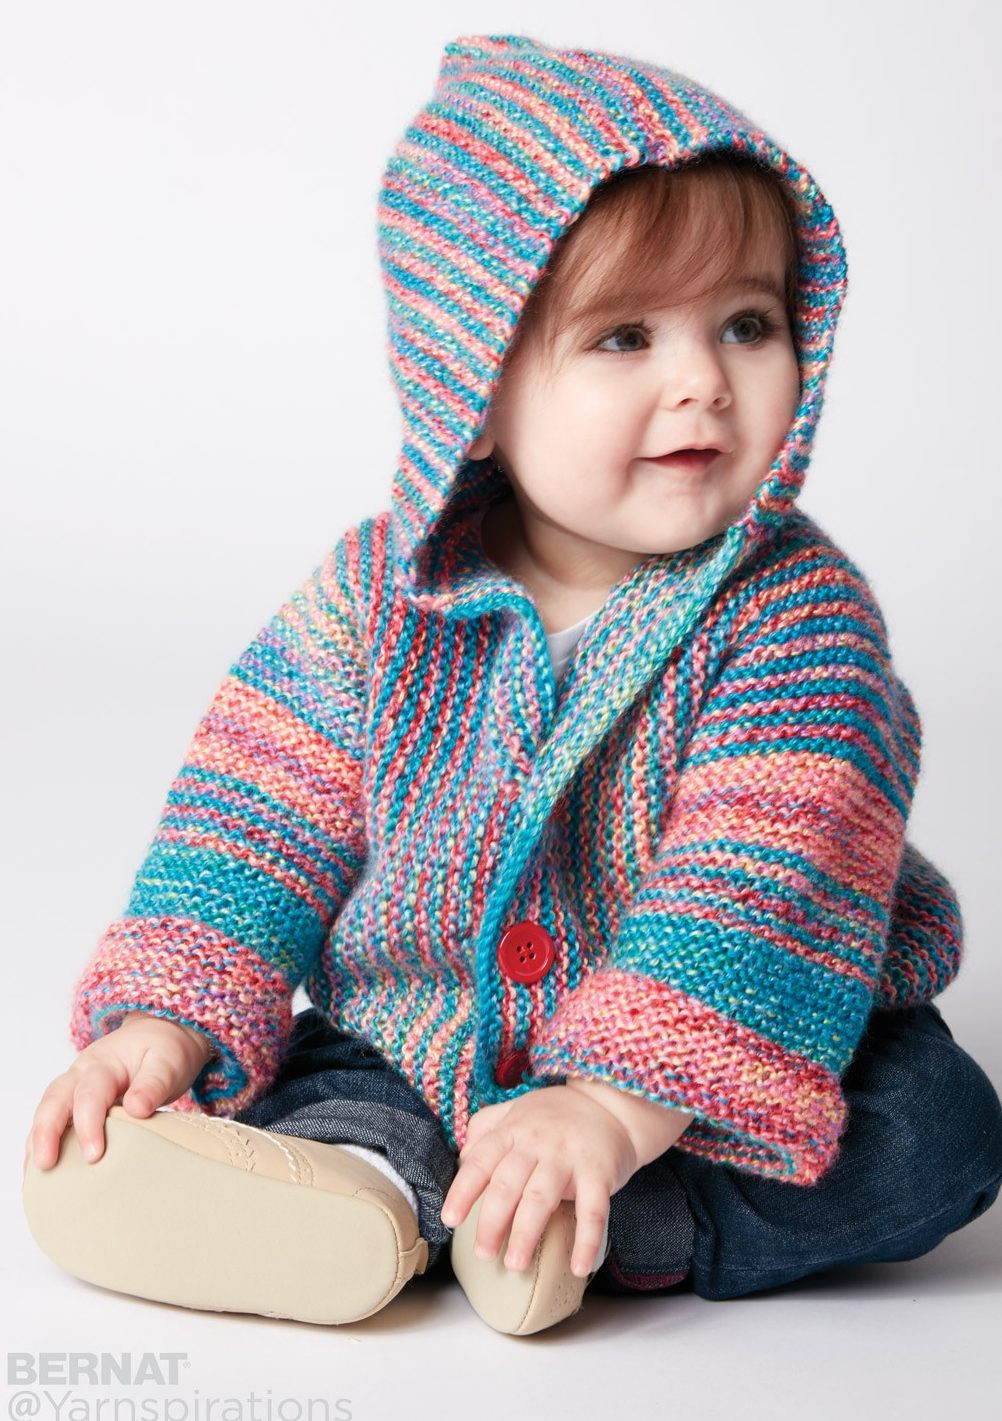 Knitting Patterns for toddlers Fresh Garter Stitch Little E Knitting Patterns Of Awesome 49 Images Knitting Patterns for toddlers